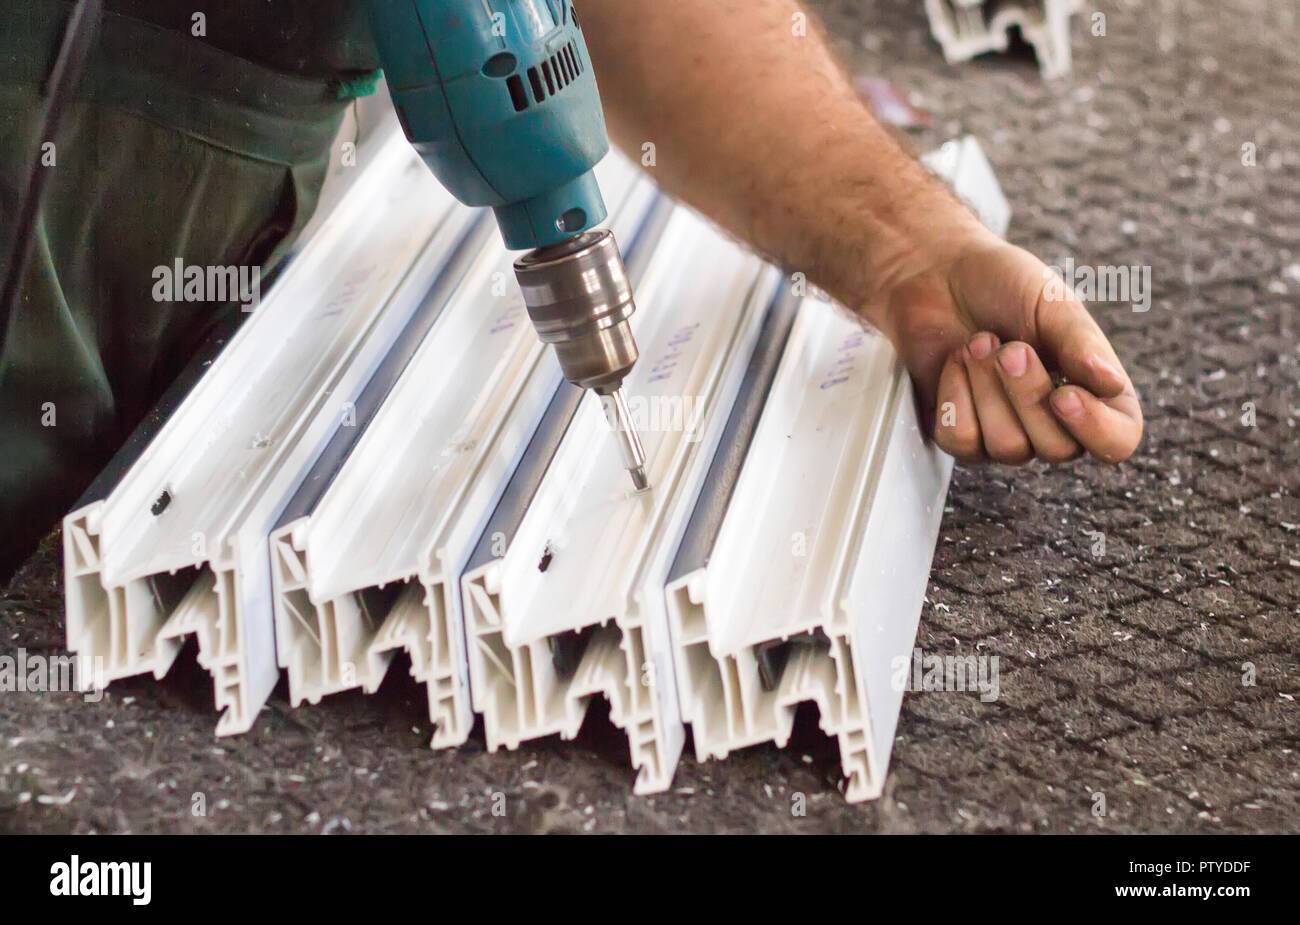 Production of pvc windows, man fastens metal profile to plastic, close-up, to screw a screwdriver, plastic - Stock Image